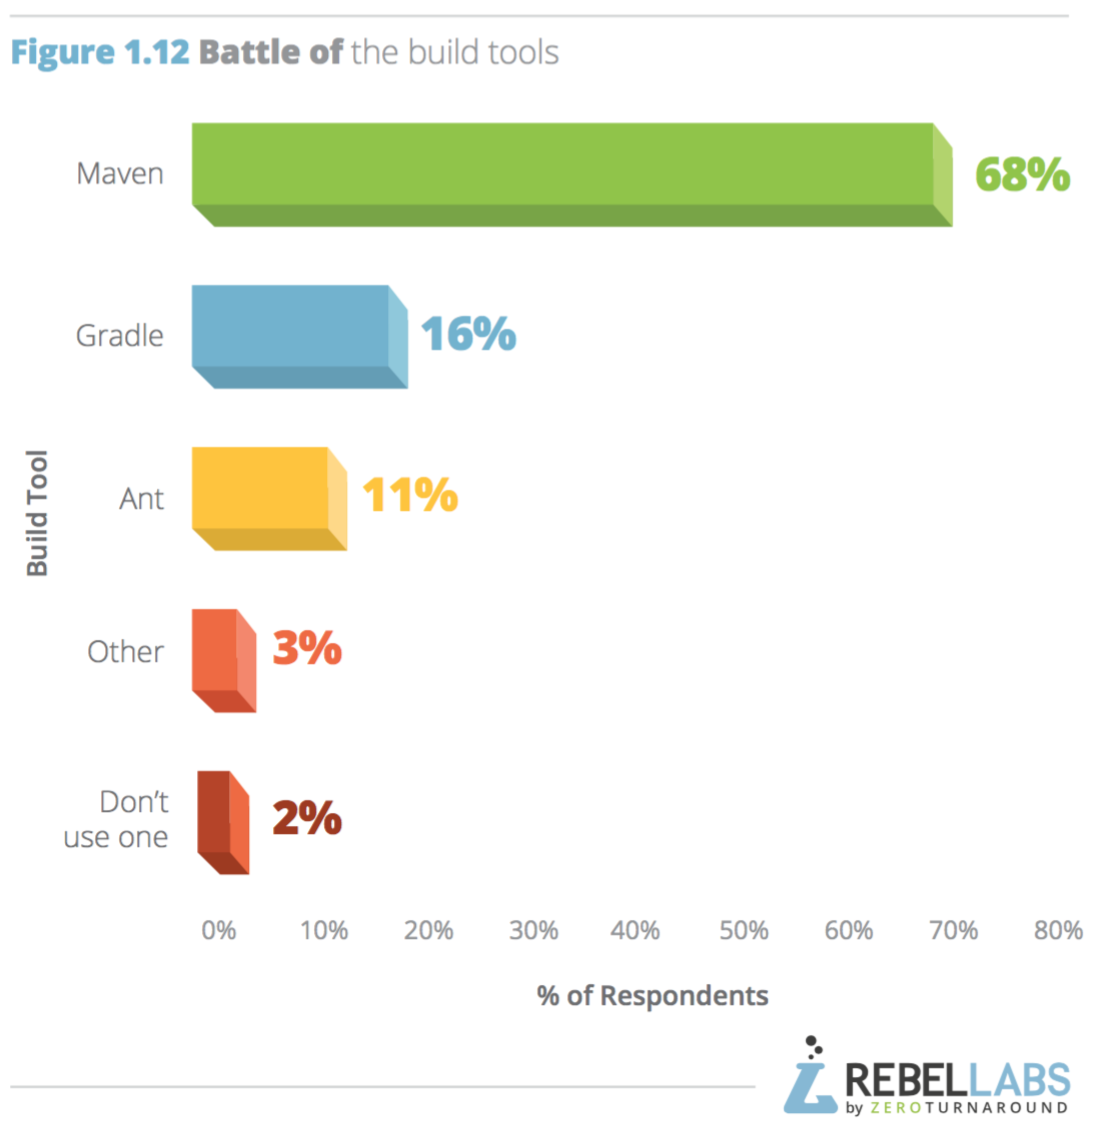 bar graph showing which build tools are used most often by respondents